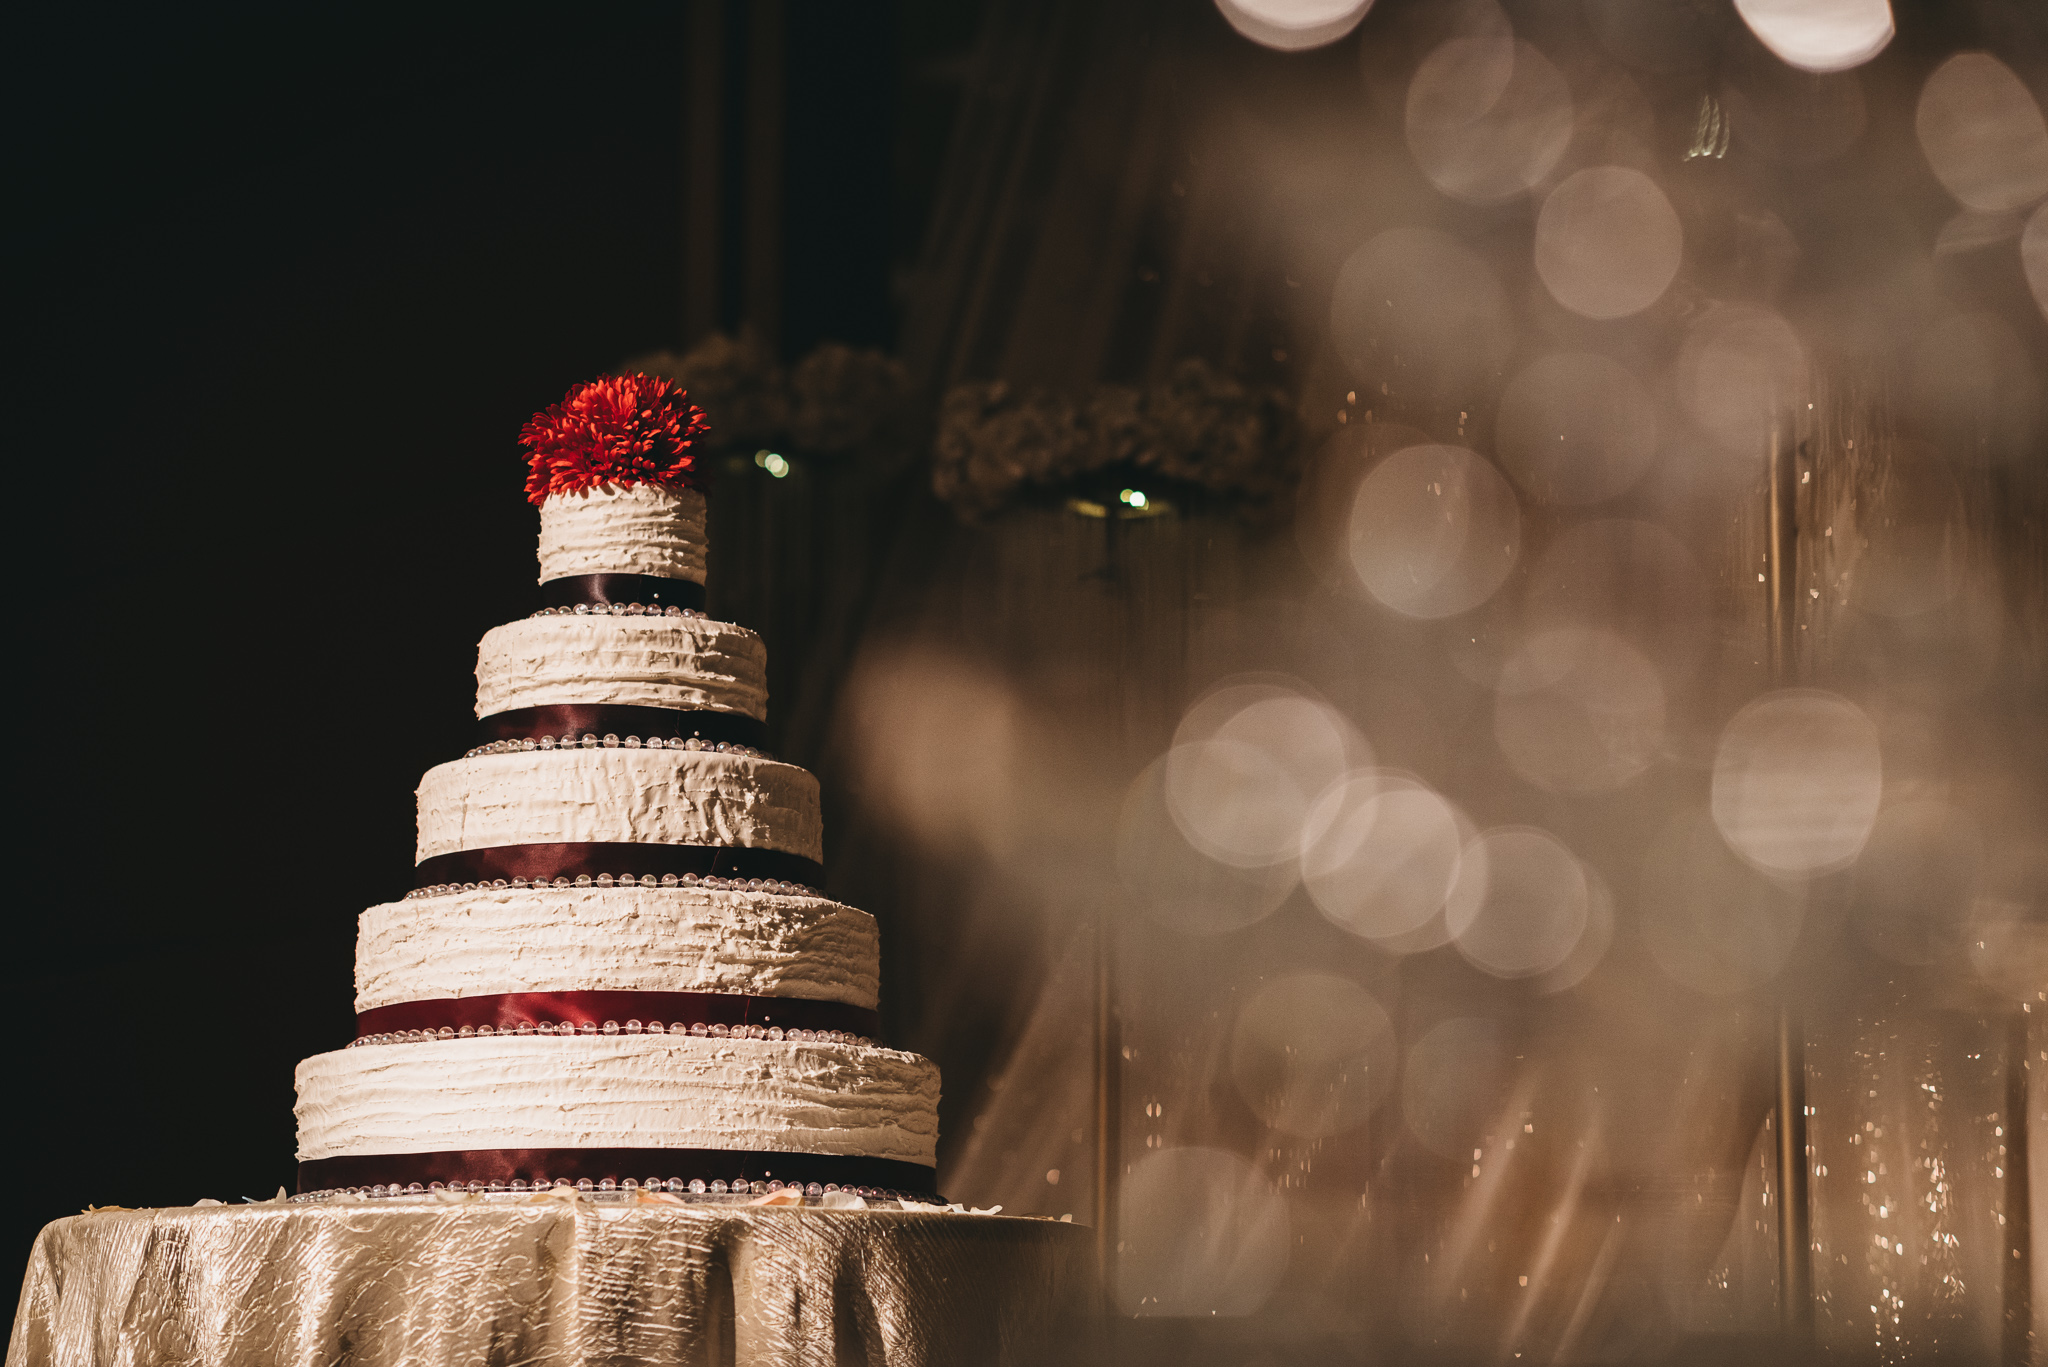 Fiona & Terence Wedding Day Highlights (resized for sharing) - 199.jpg